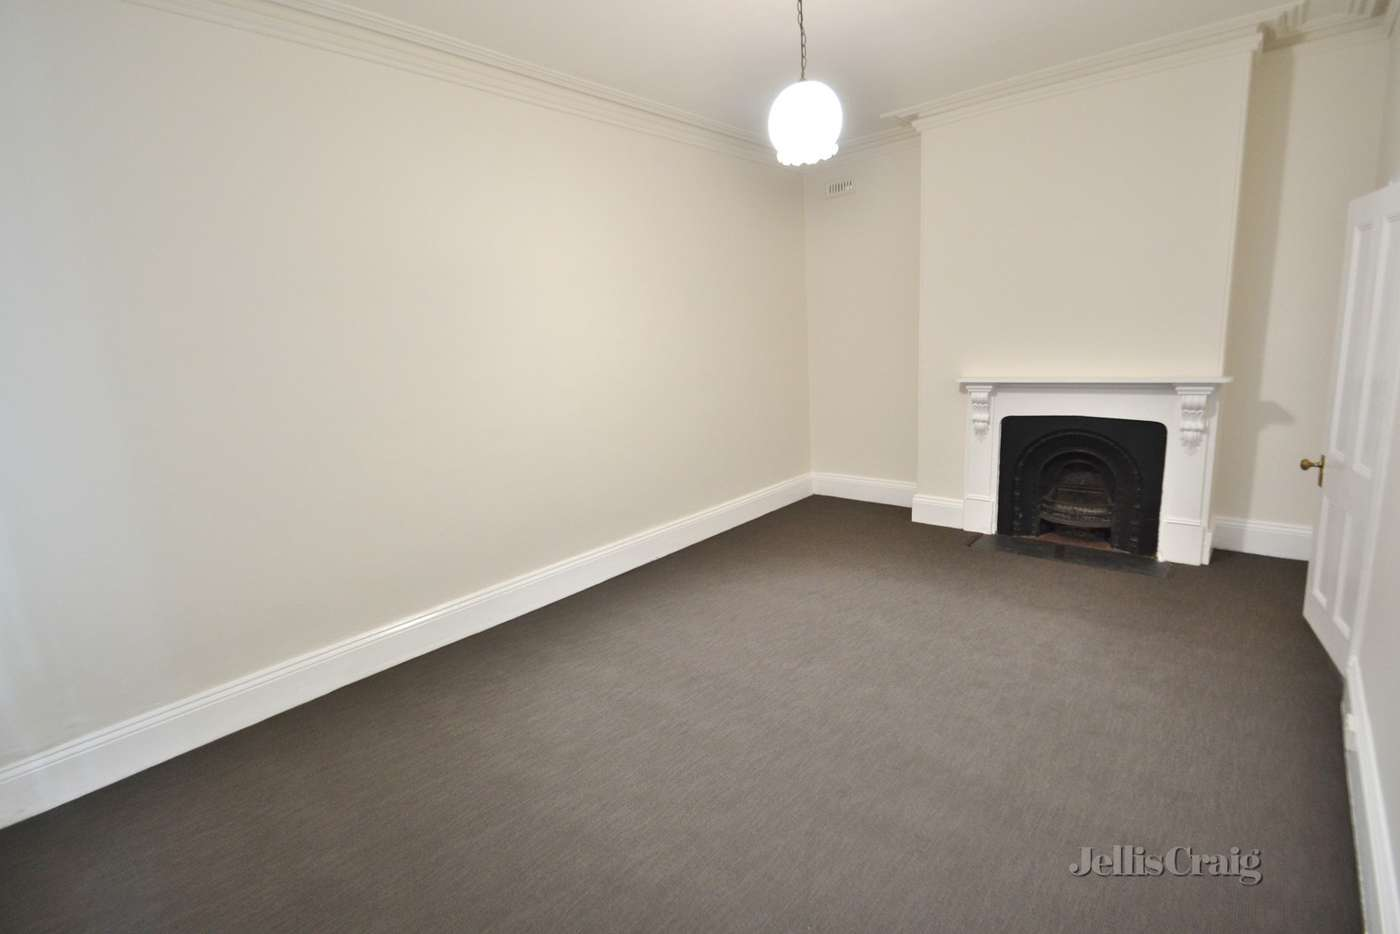 Fifth view of Homely house listing, 60 Arden Street, North Melbourne VIC 3051